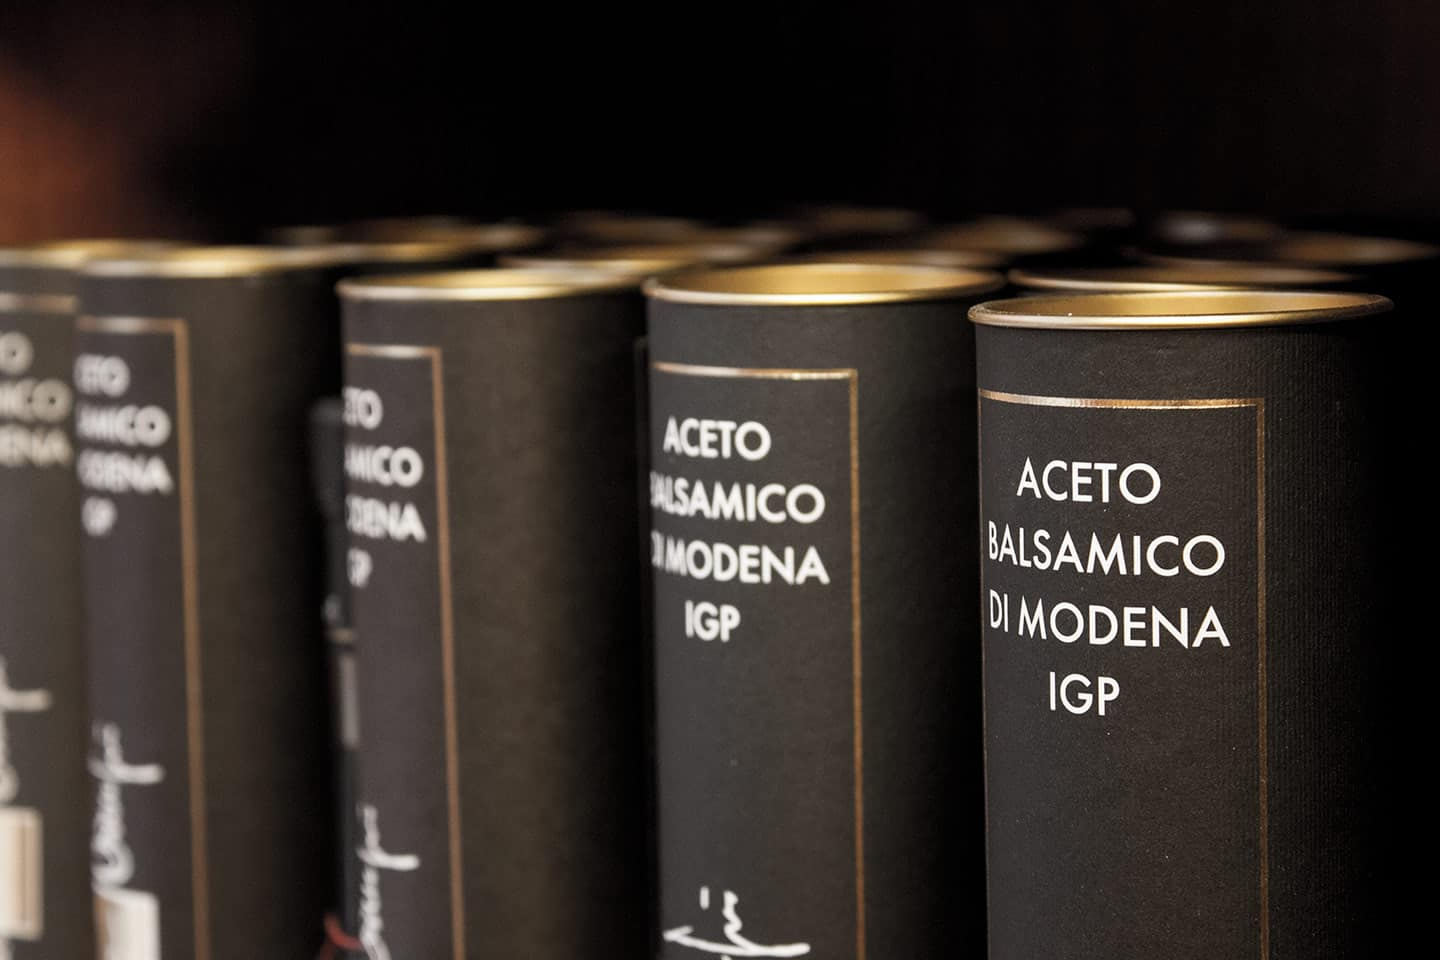 Image of presentation boxes of Balsamic vinegar of Modena